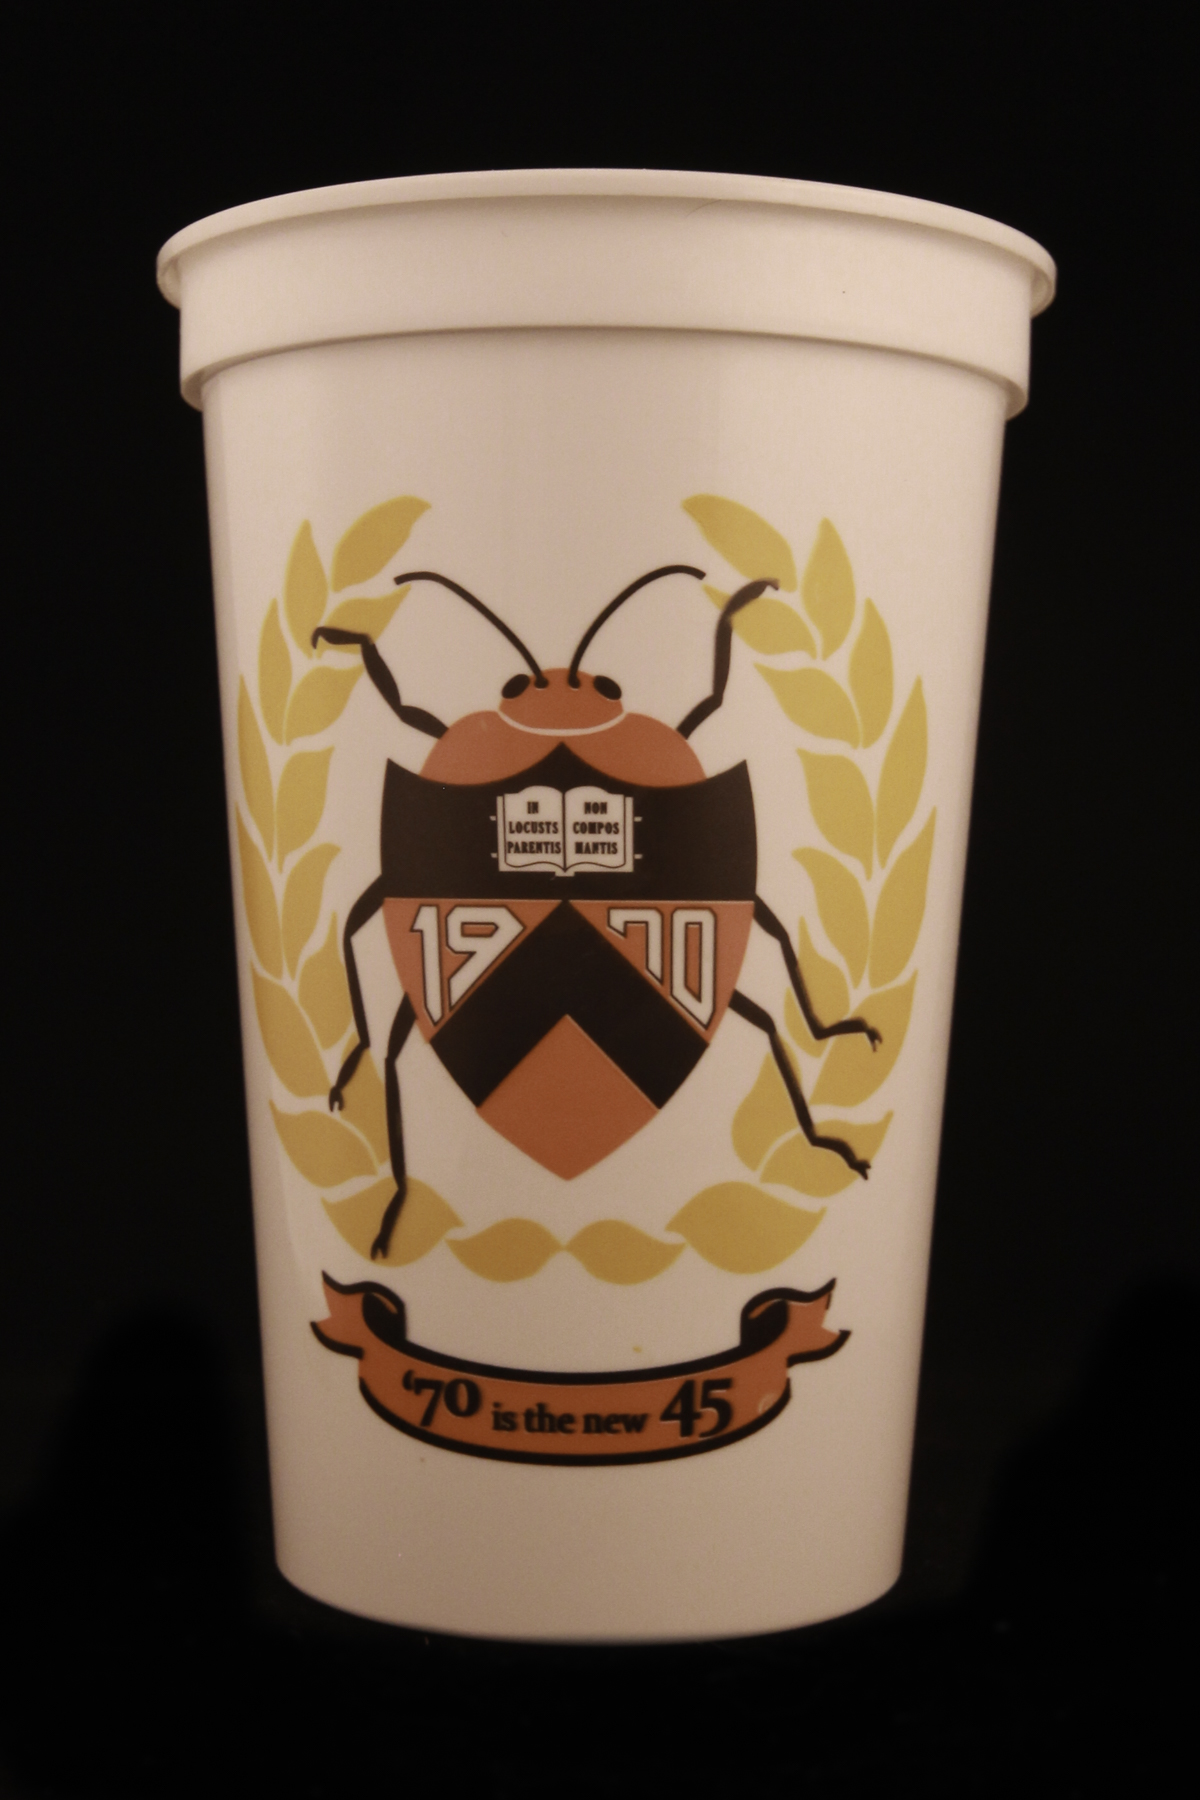 Beer Cup 1970 45th Reunion